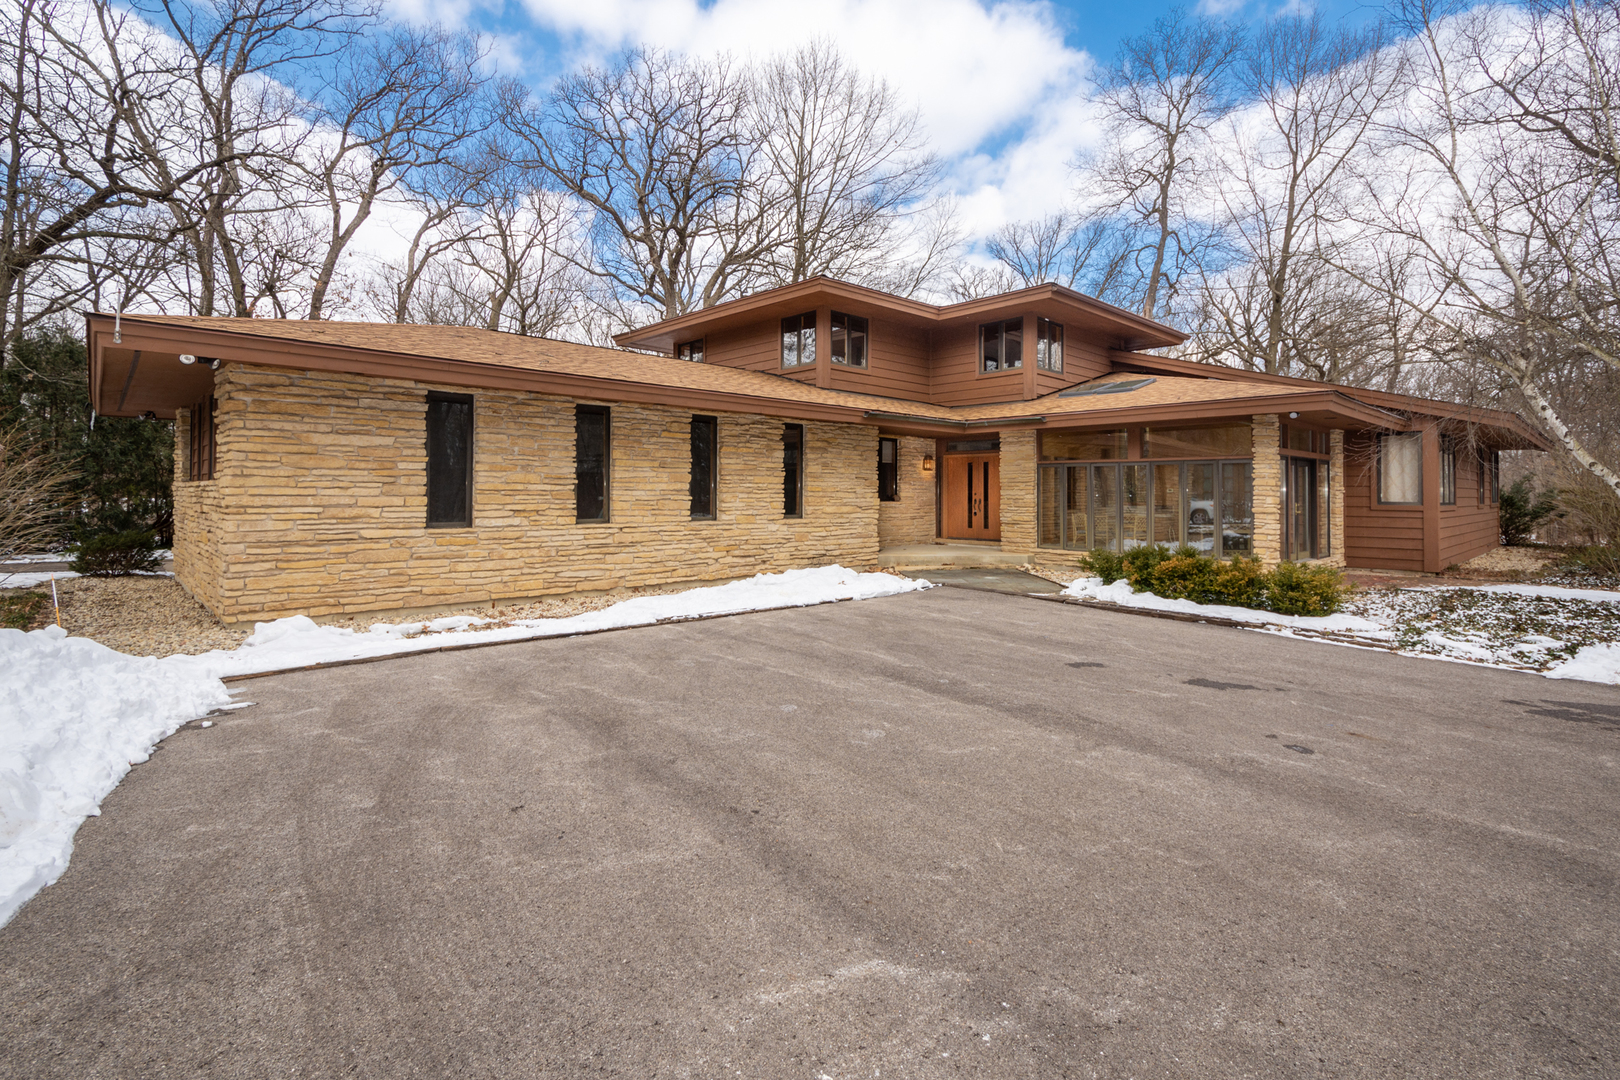 19844 West Woodmere Terrace, Antioch, Illinois